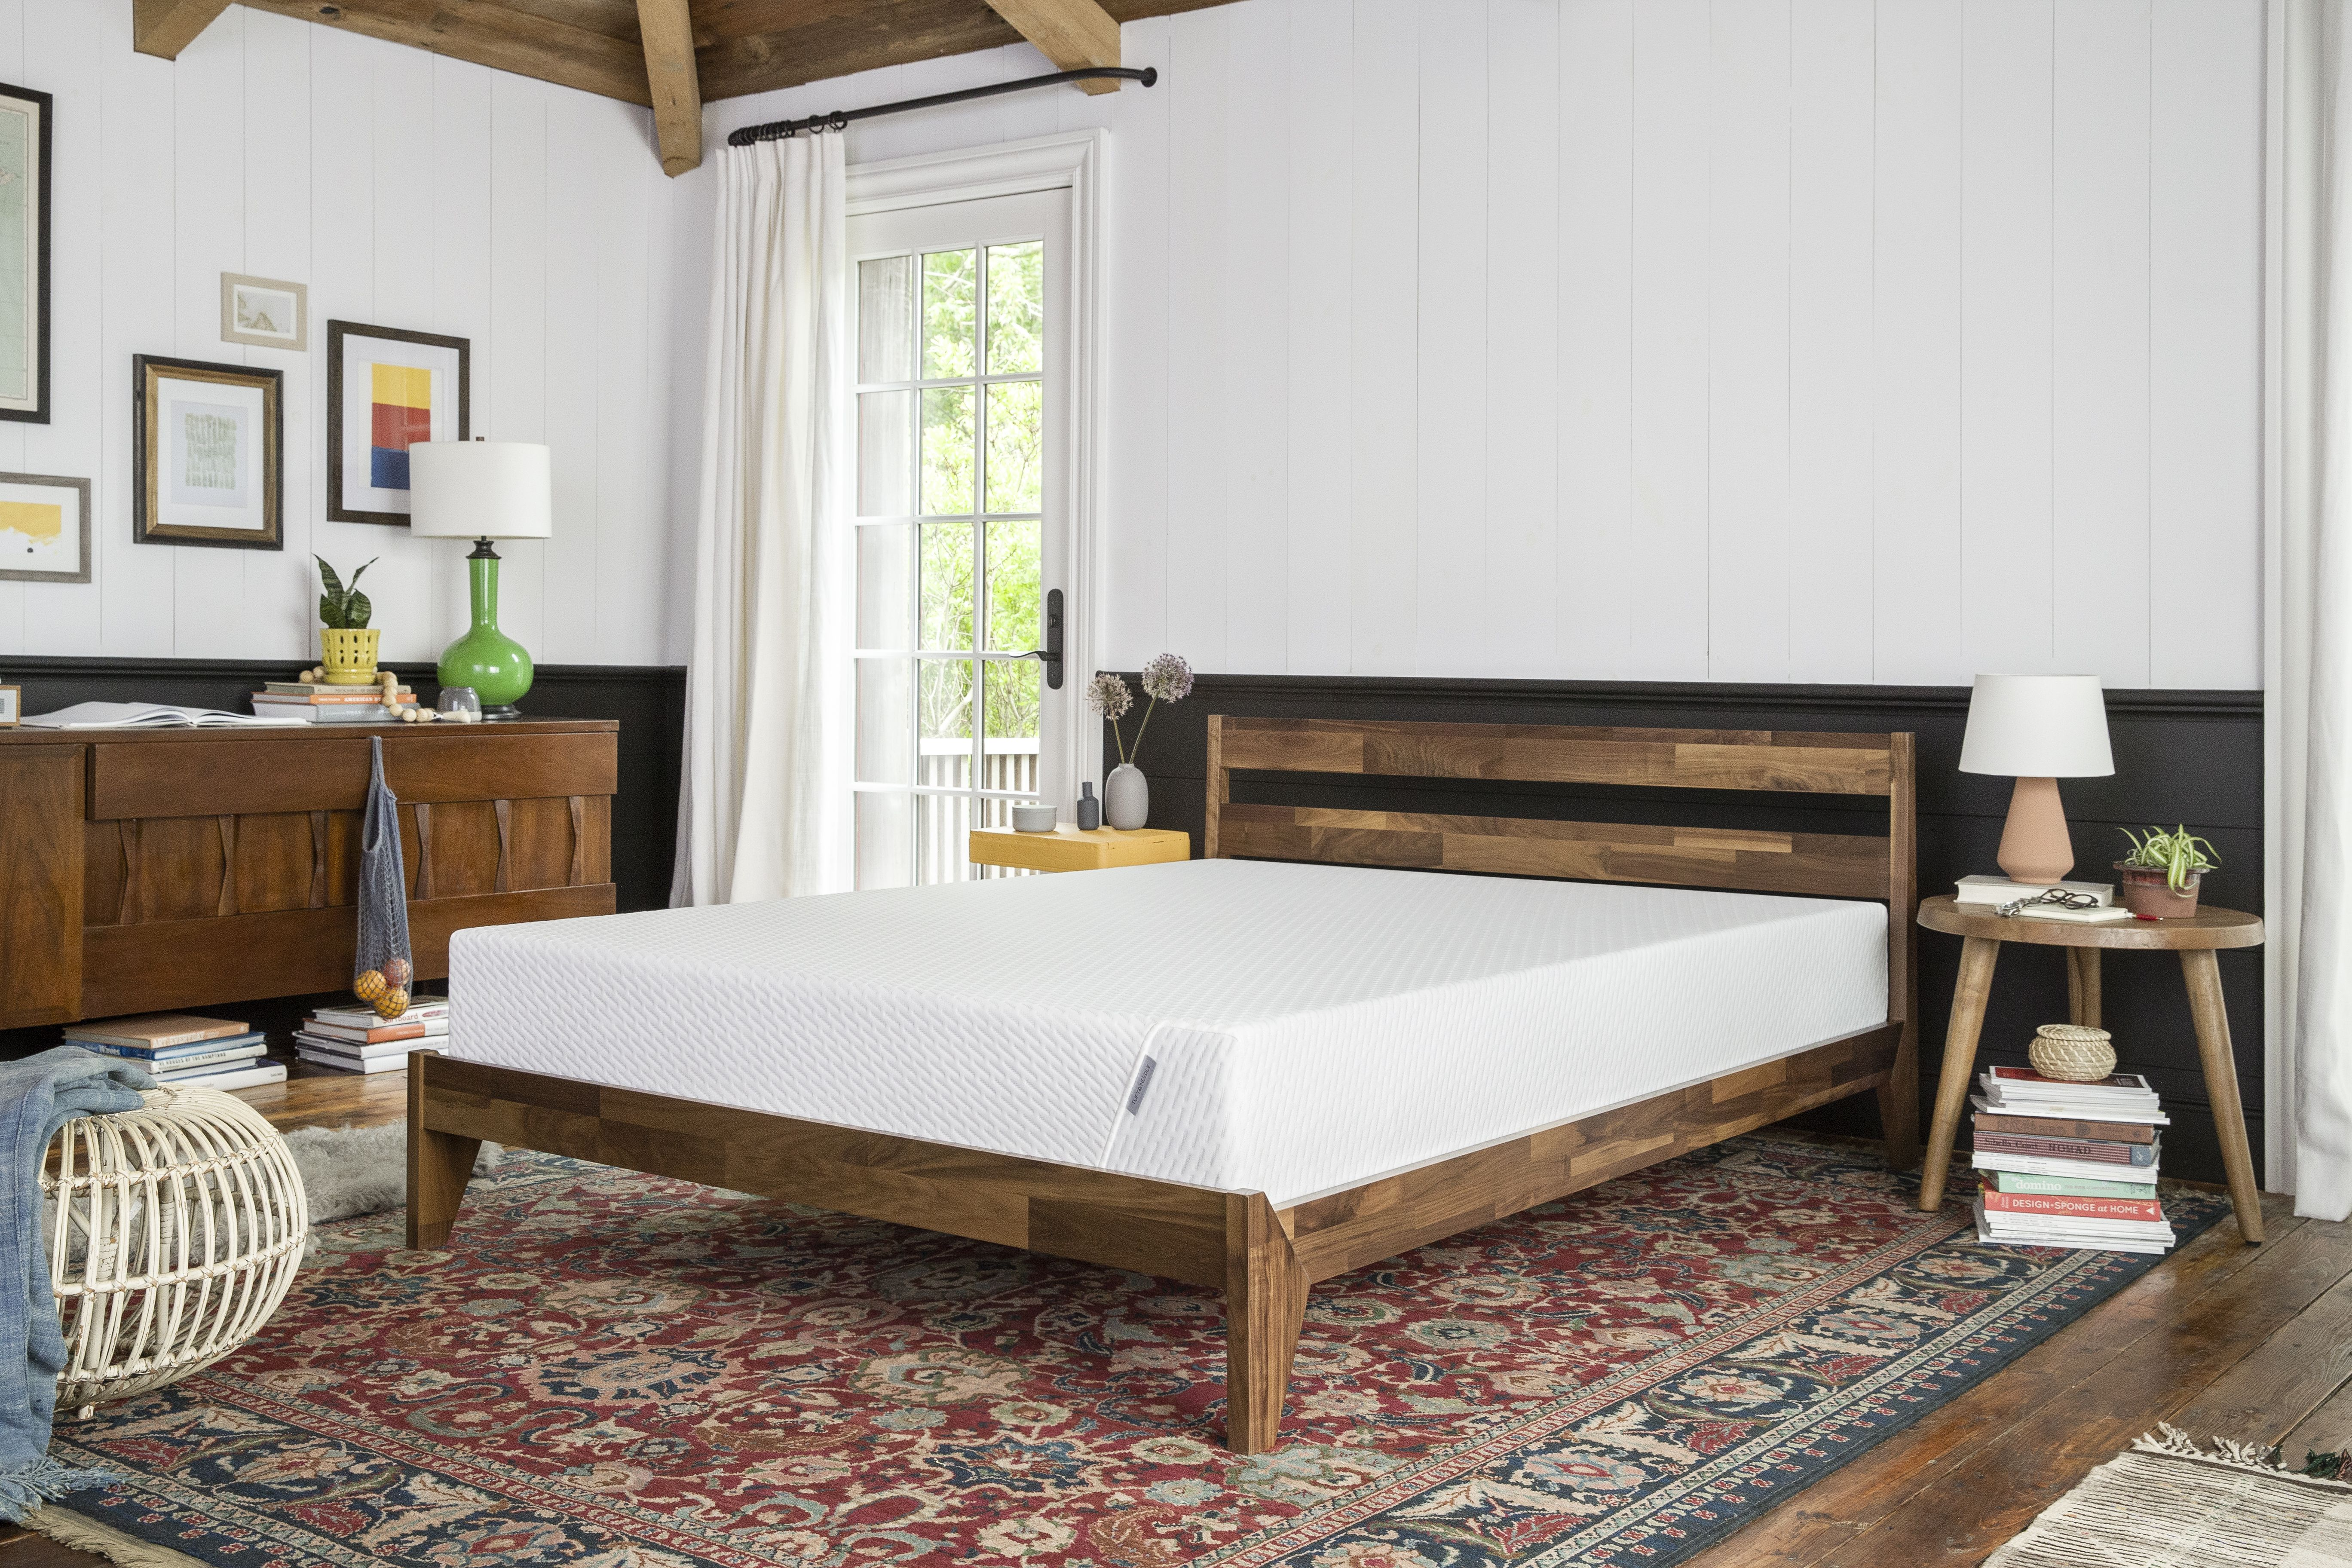 Tuft & Needle Is Giving Away a Mattress a Day Through